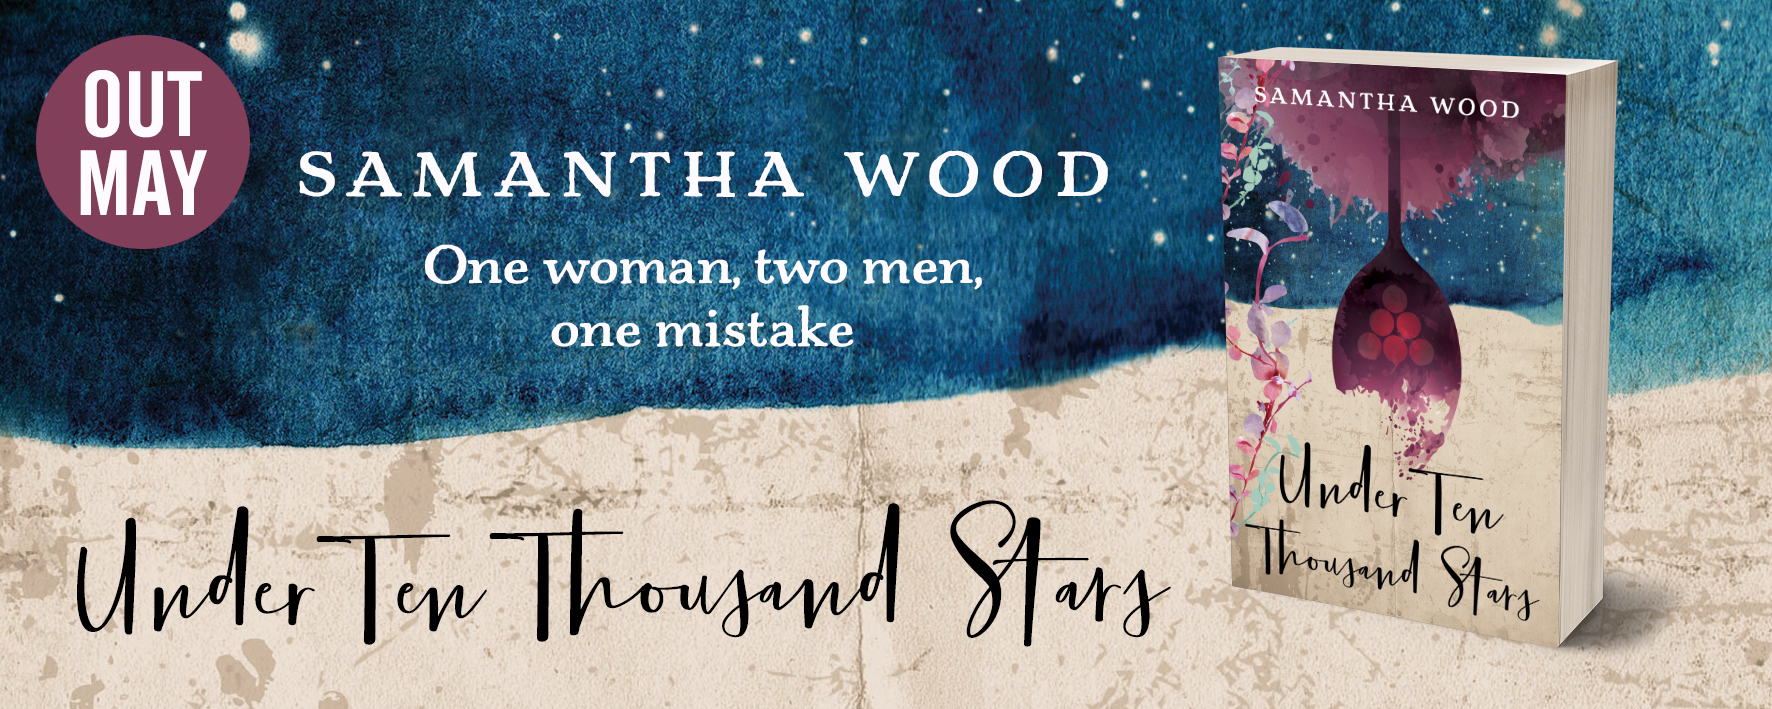 Under Ten Thousand Stars, a novel by Samantha Wood, out May 2019